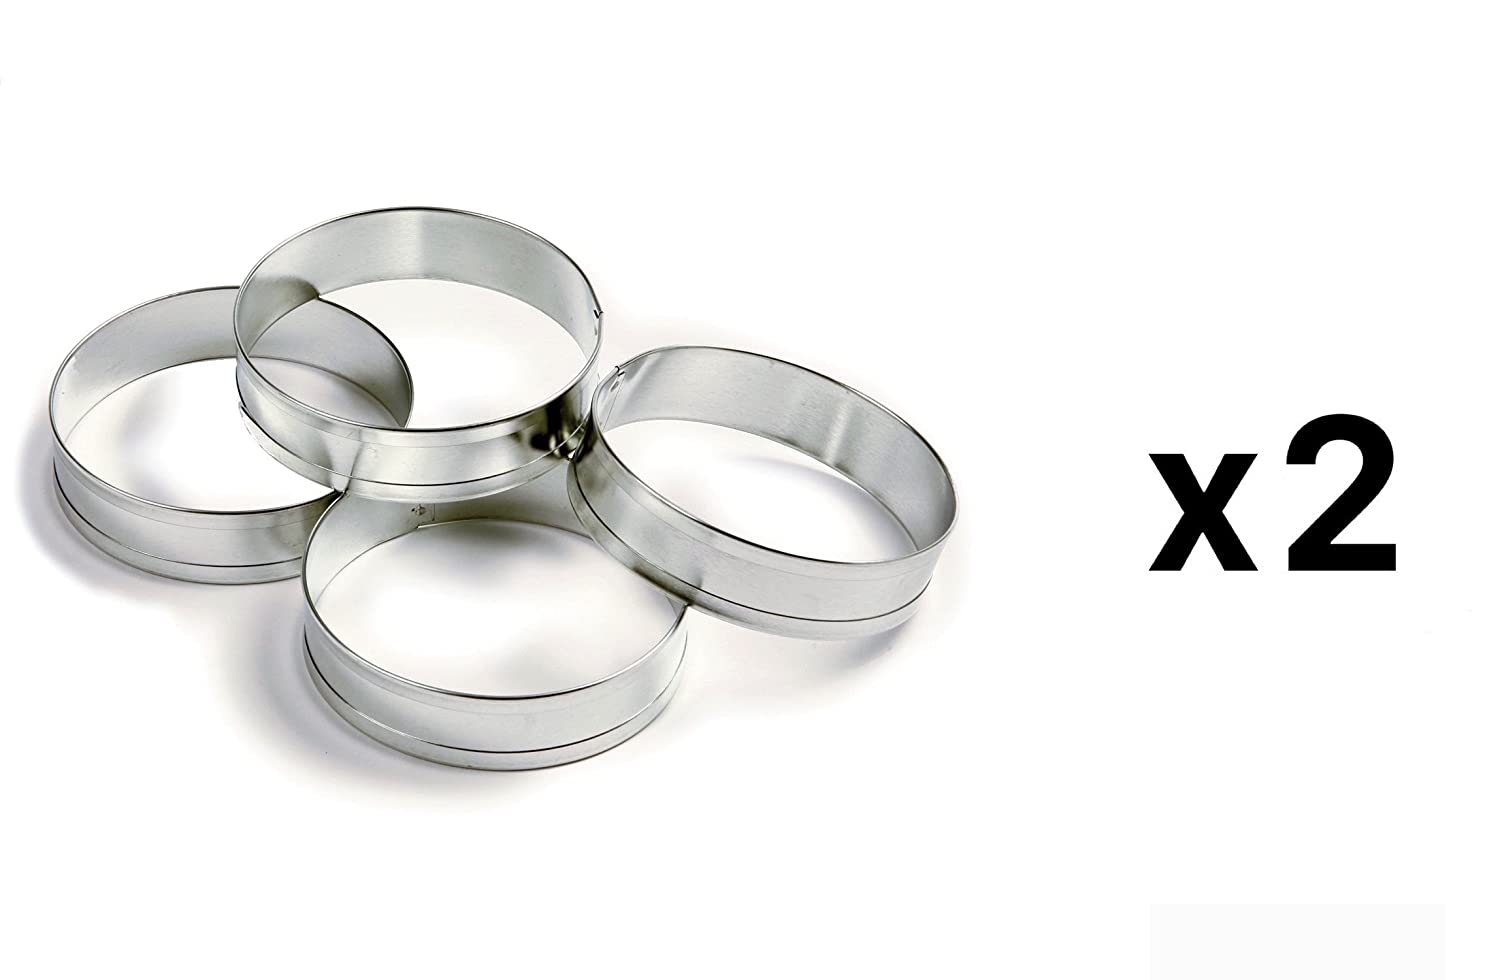 boutique chef round ring rings high tart steel perforated s cm stainless pastry chefs